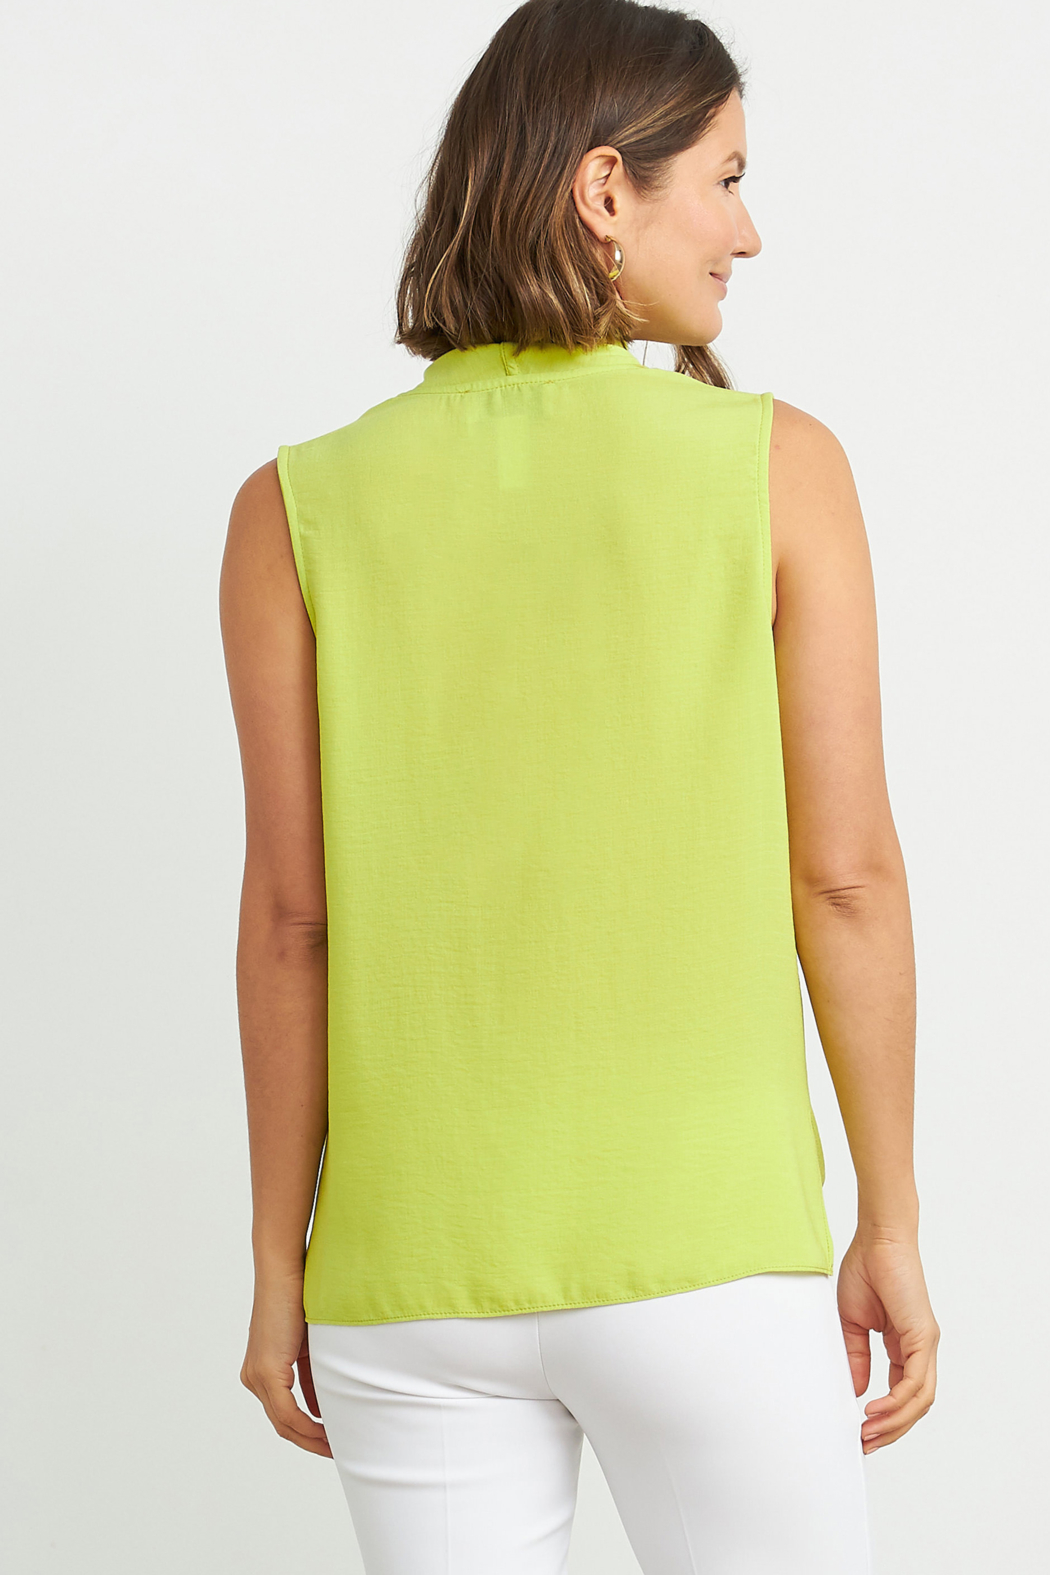 Joseph Ribkoff  Sleeveless button-up blouse - Front Full Image